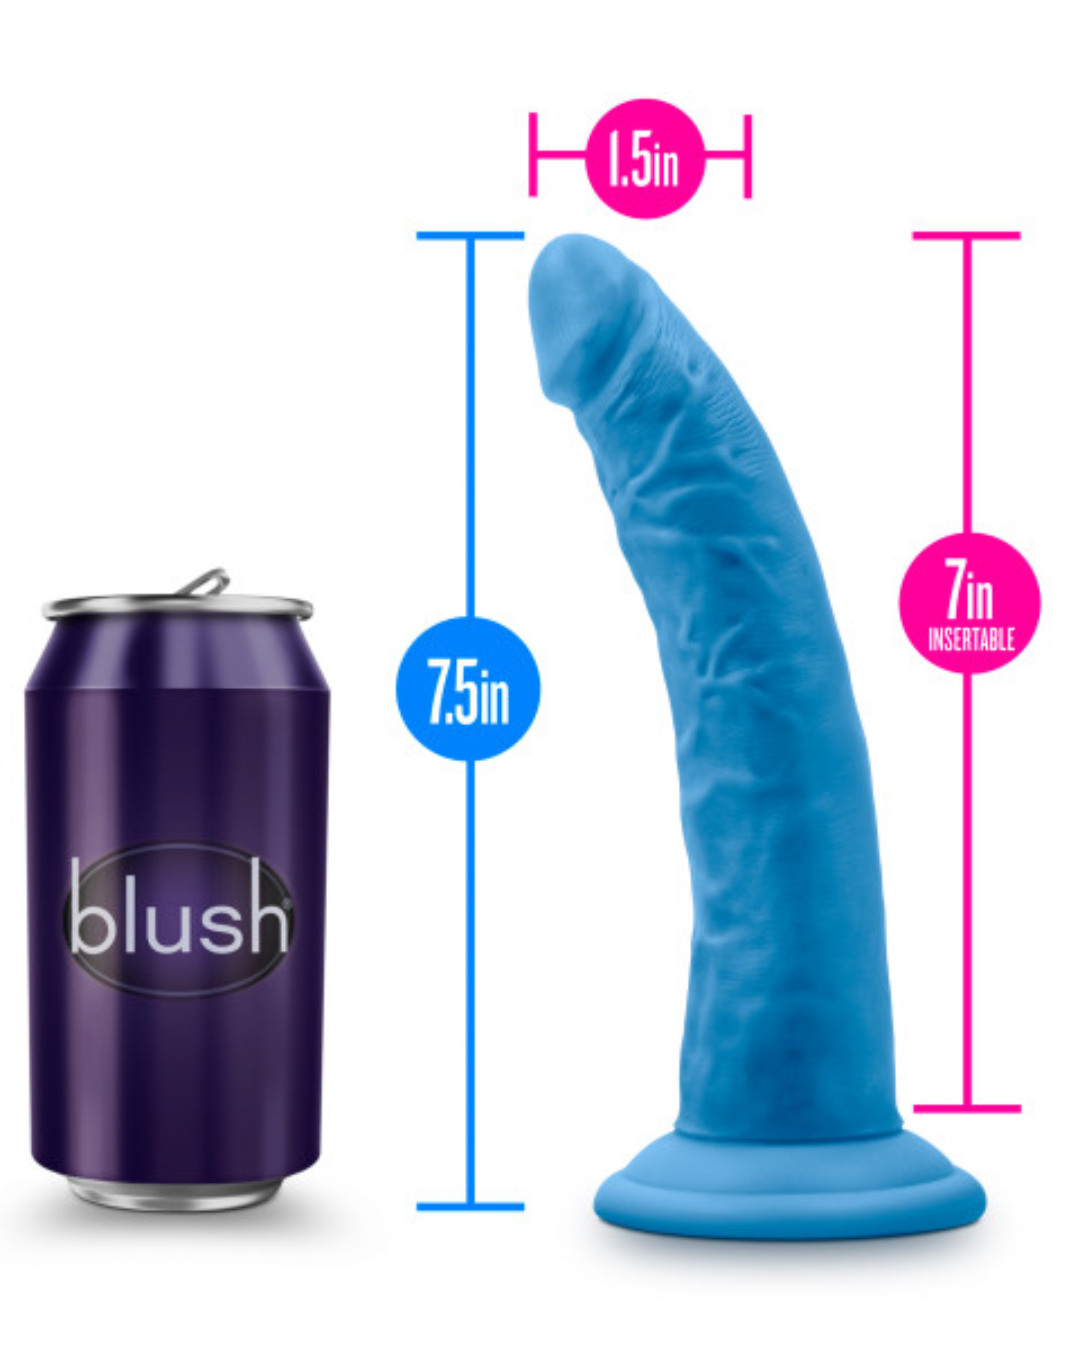 Neo Elite 7.5 Inch Dual Density Silicone Dildo by Blush - Neon Blue showing the measurements against an average sized pop can